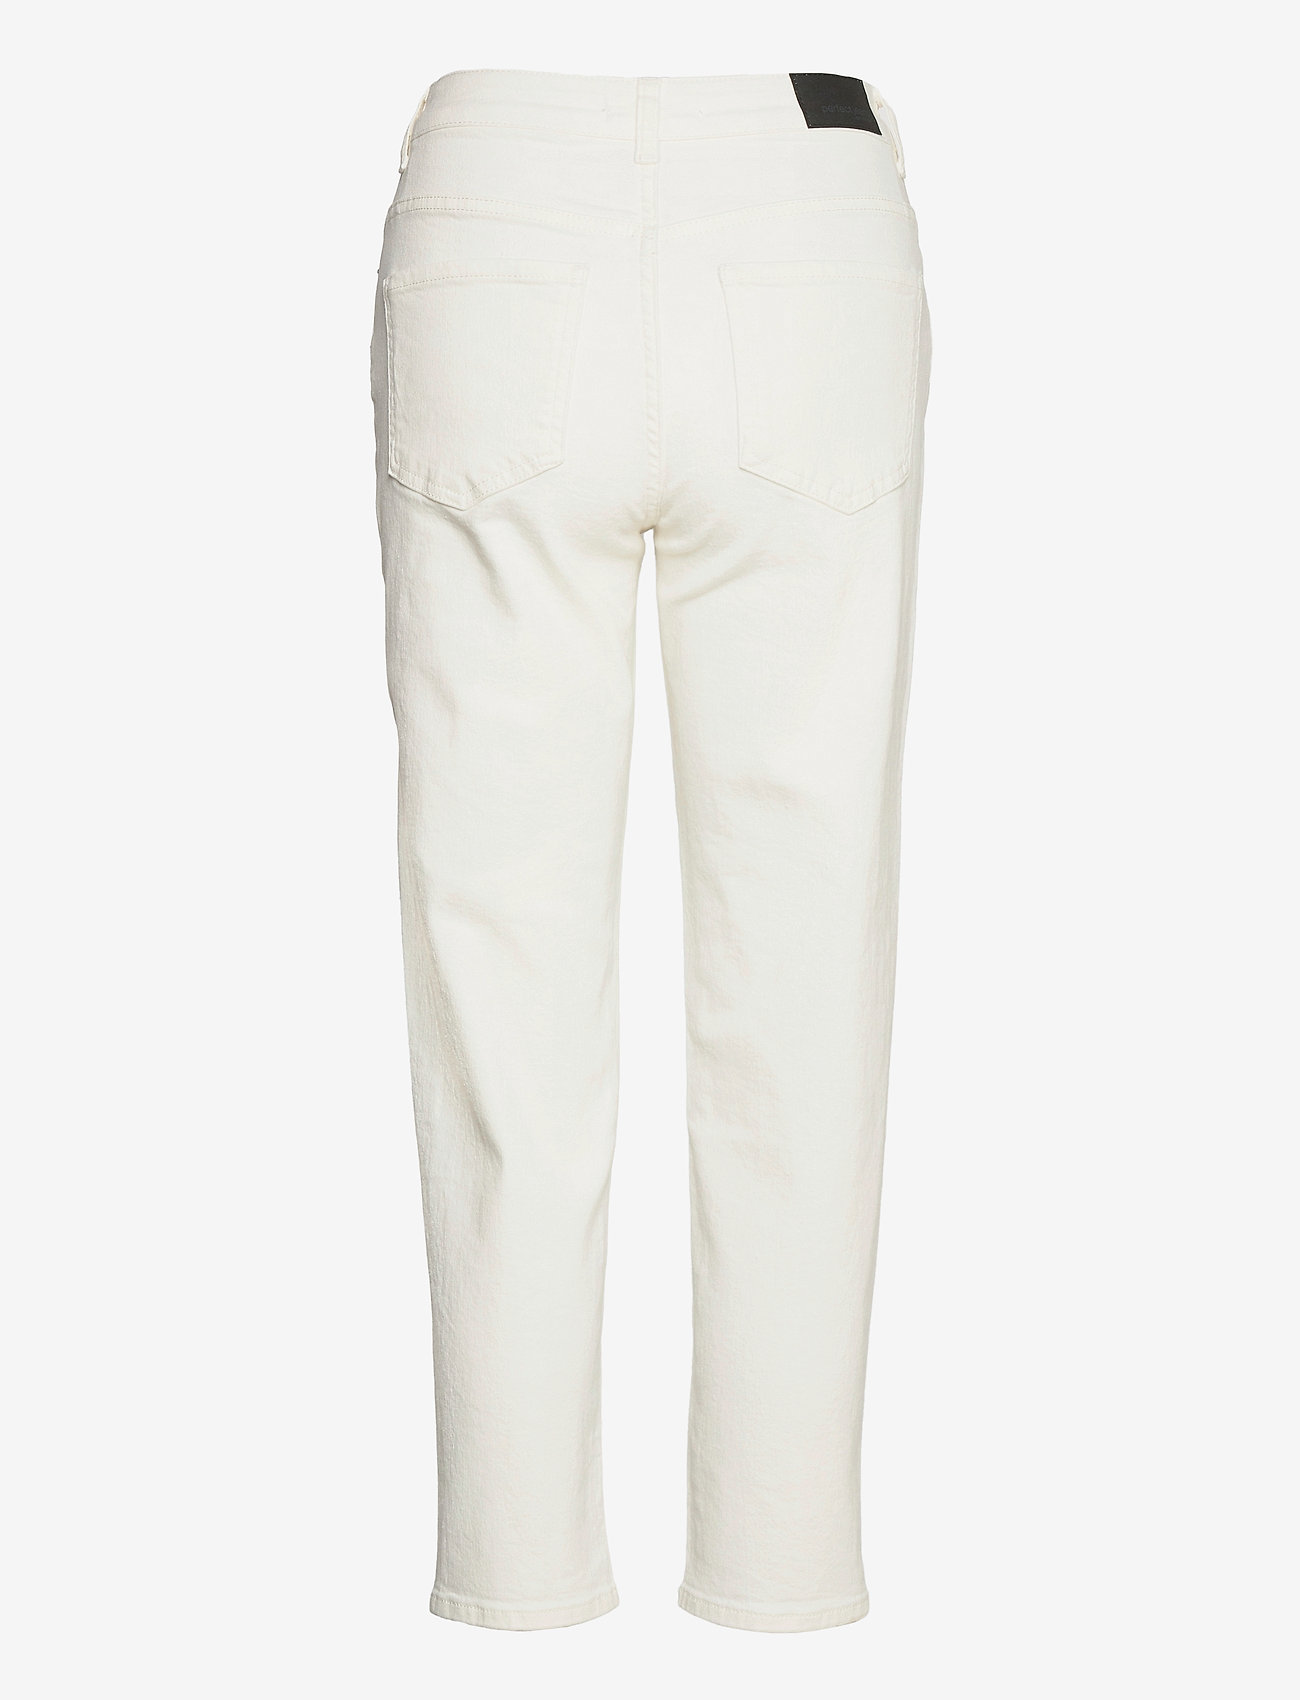 Gina Tricot - Comfy mom jeans - mammajeans - offwhite - 1